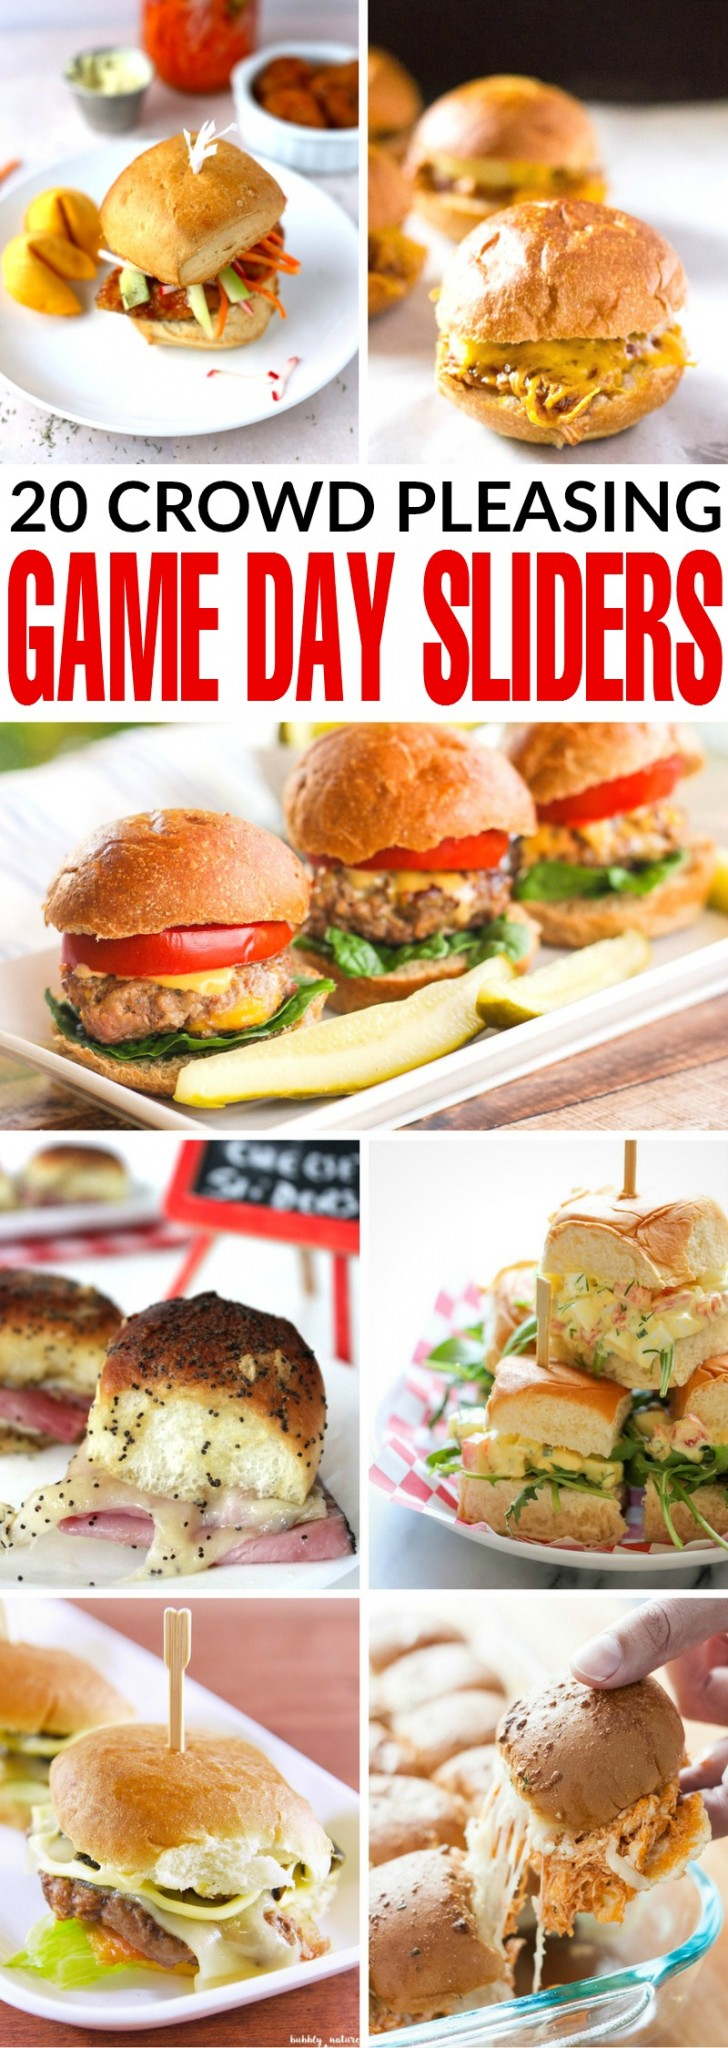 If you need a quick and easy appetizer for game day, sliders make the perfect choice. Your guests can enjoy these tasty game day sliders while keeping their eyes on the screen.